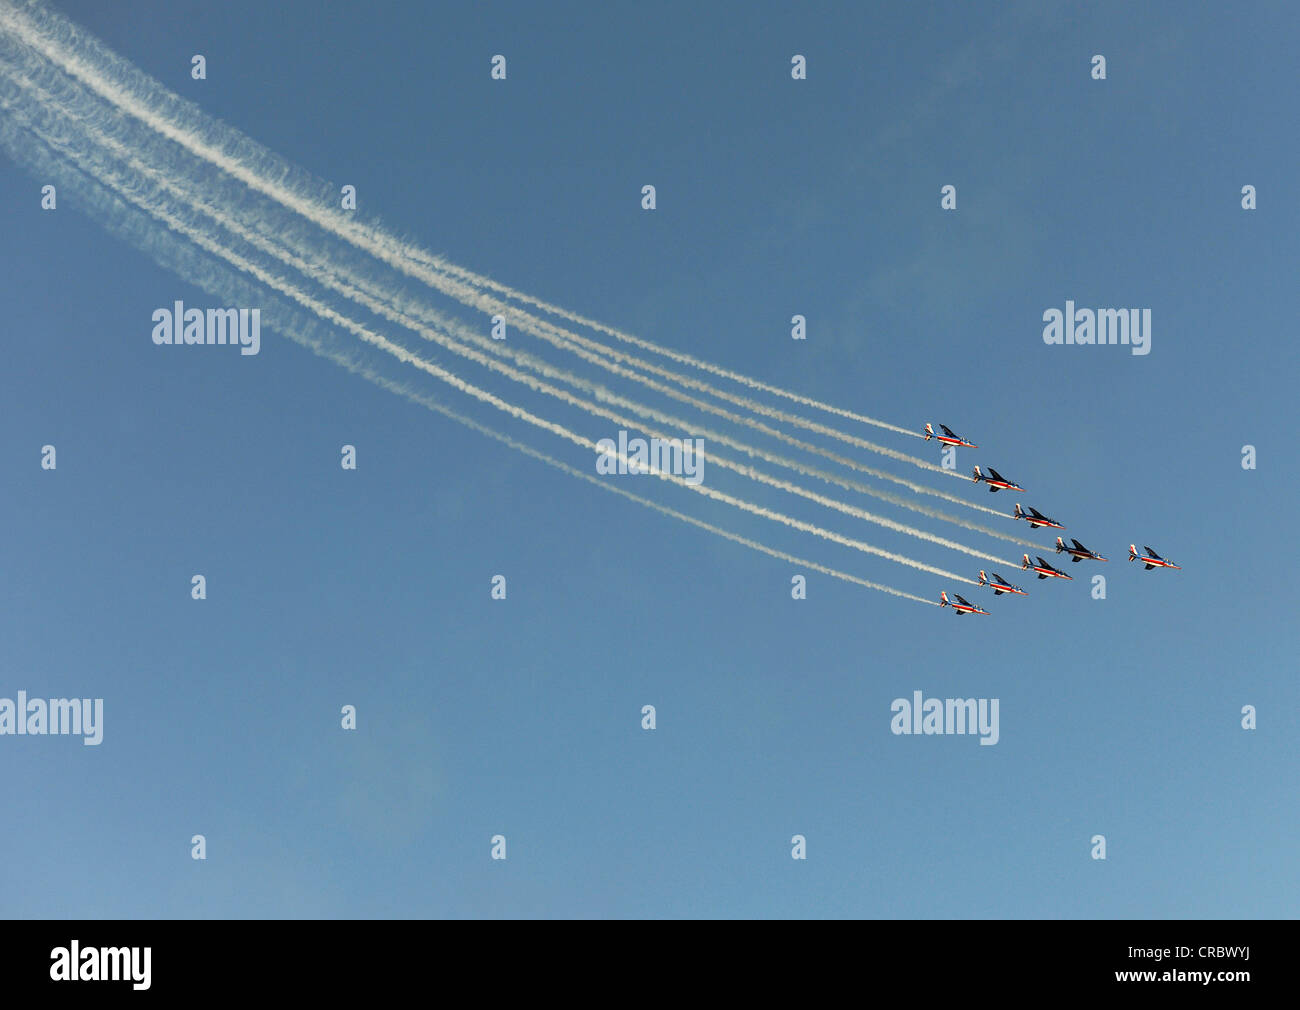 Alpha Jets of the Patrouille de France in action during the Dubai Air Show, United Arab Emirates, Middle East - Stock Image